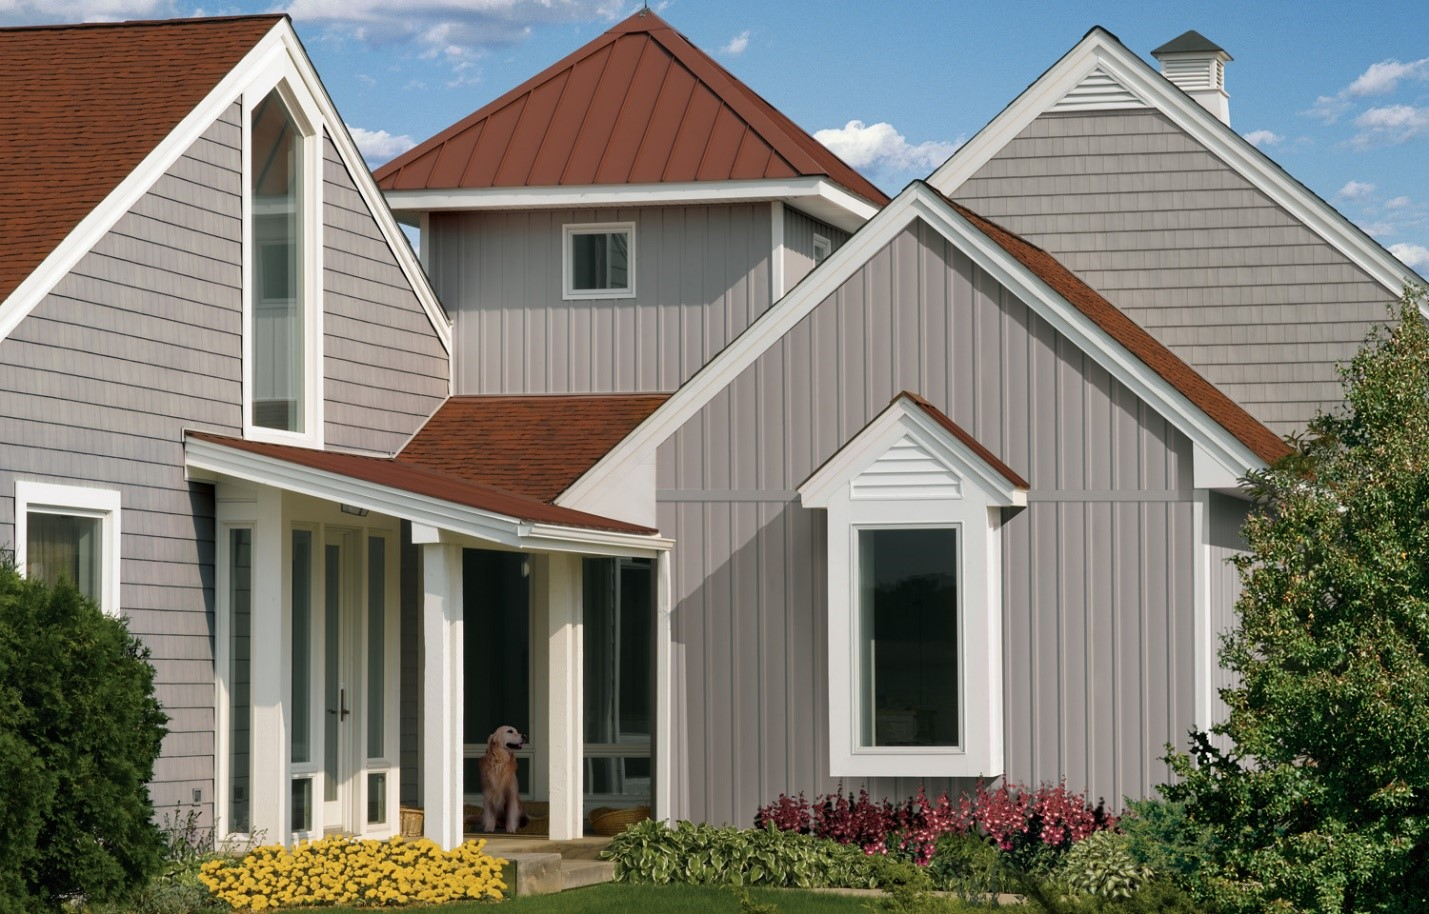 9 Vertical House Siding Design Ideas | Allura USA on House Siding Ideas  id=38683